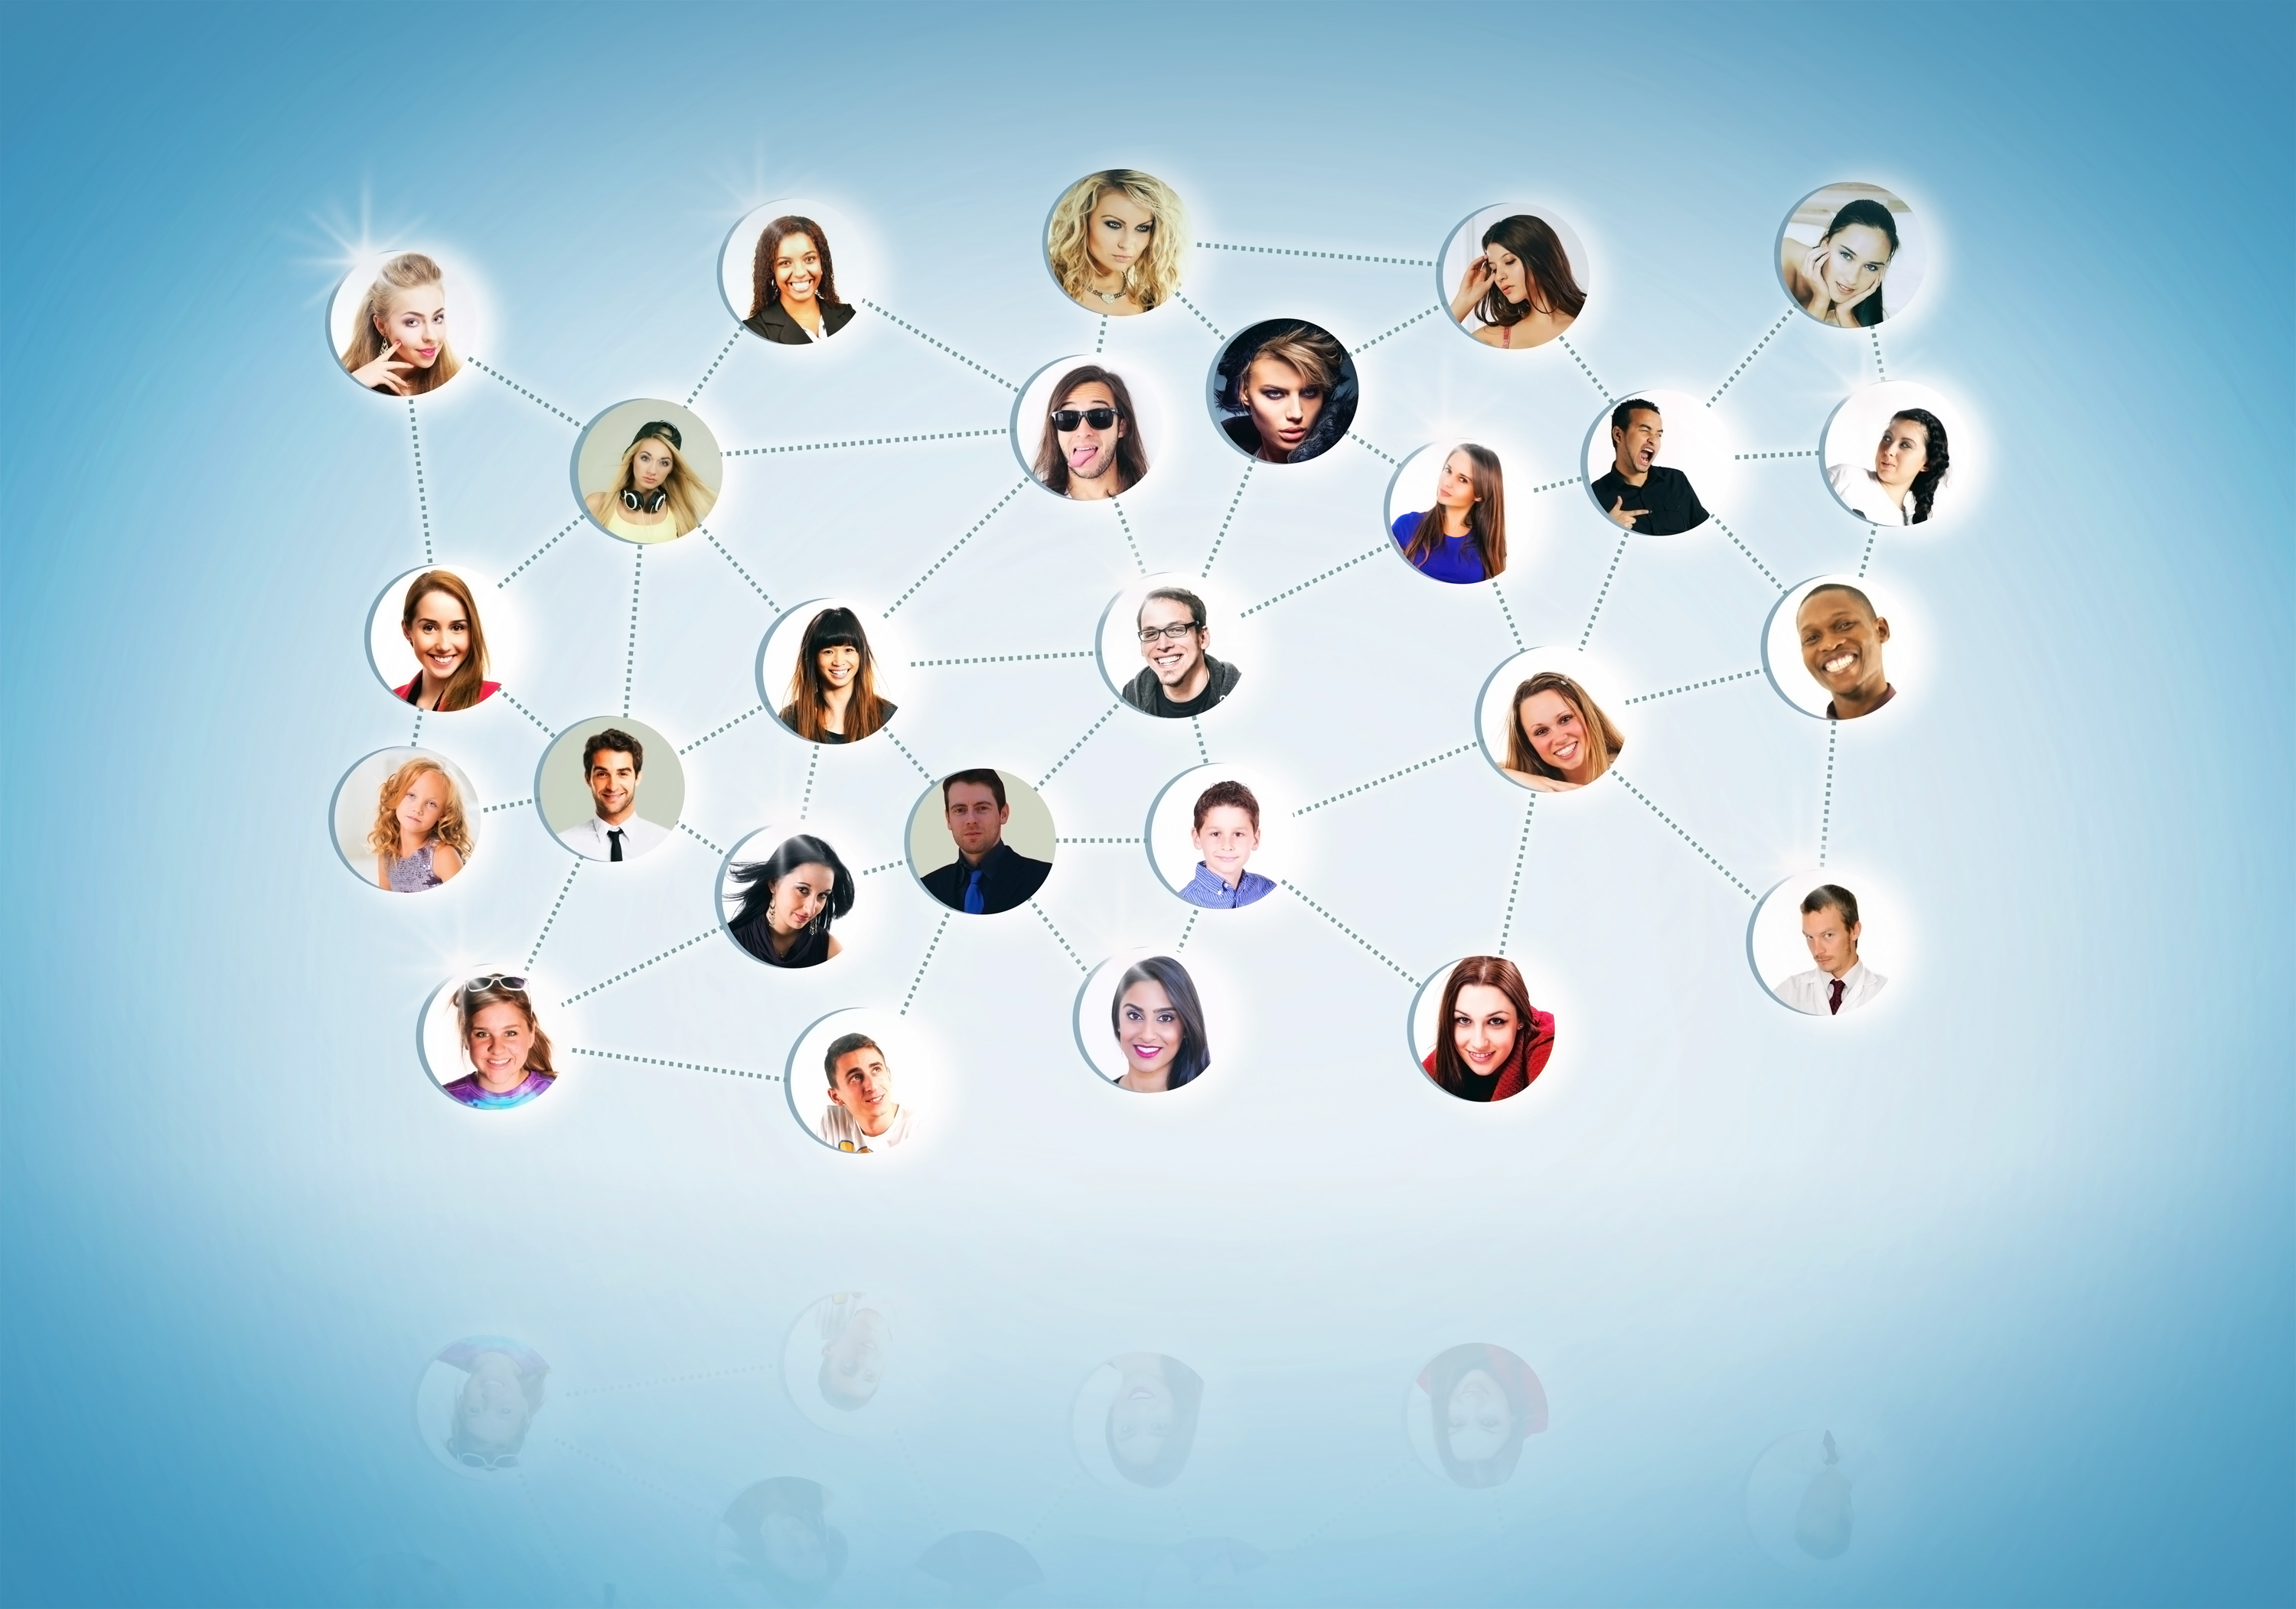 A Network of People - Networking Concept, Abstract, Organizer, Professionals, Portrait, HQ Photo